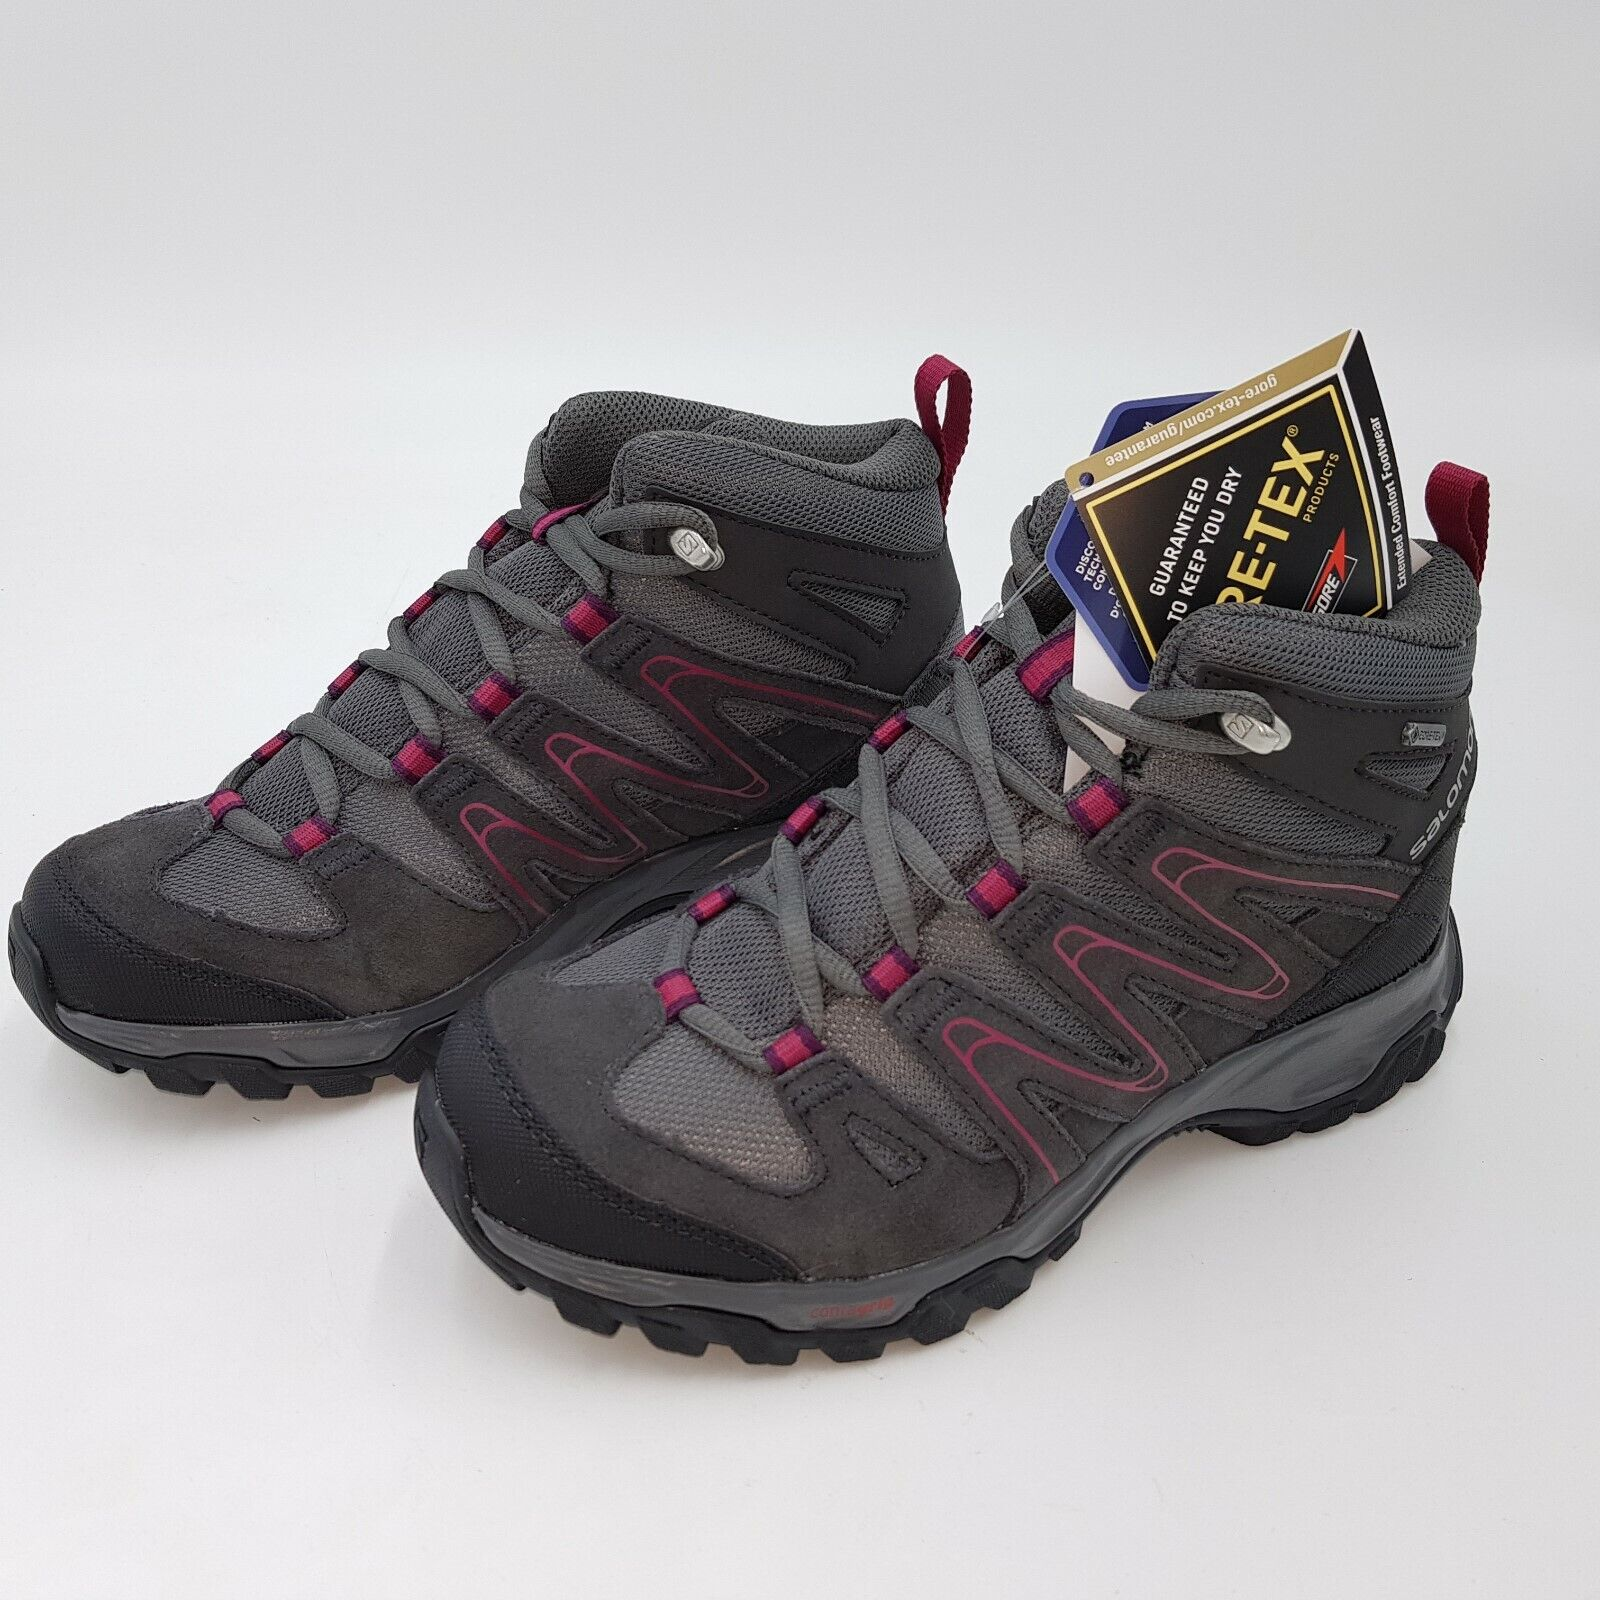 Salomon Campside MID 5 GTX® W - Gr 39 1 3  - UK 6 - NEU (404890)